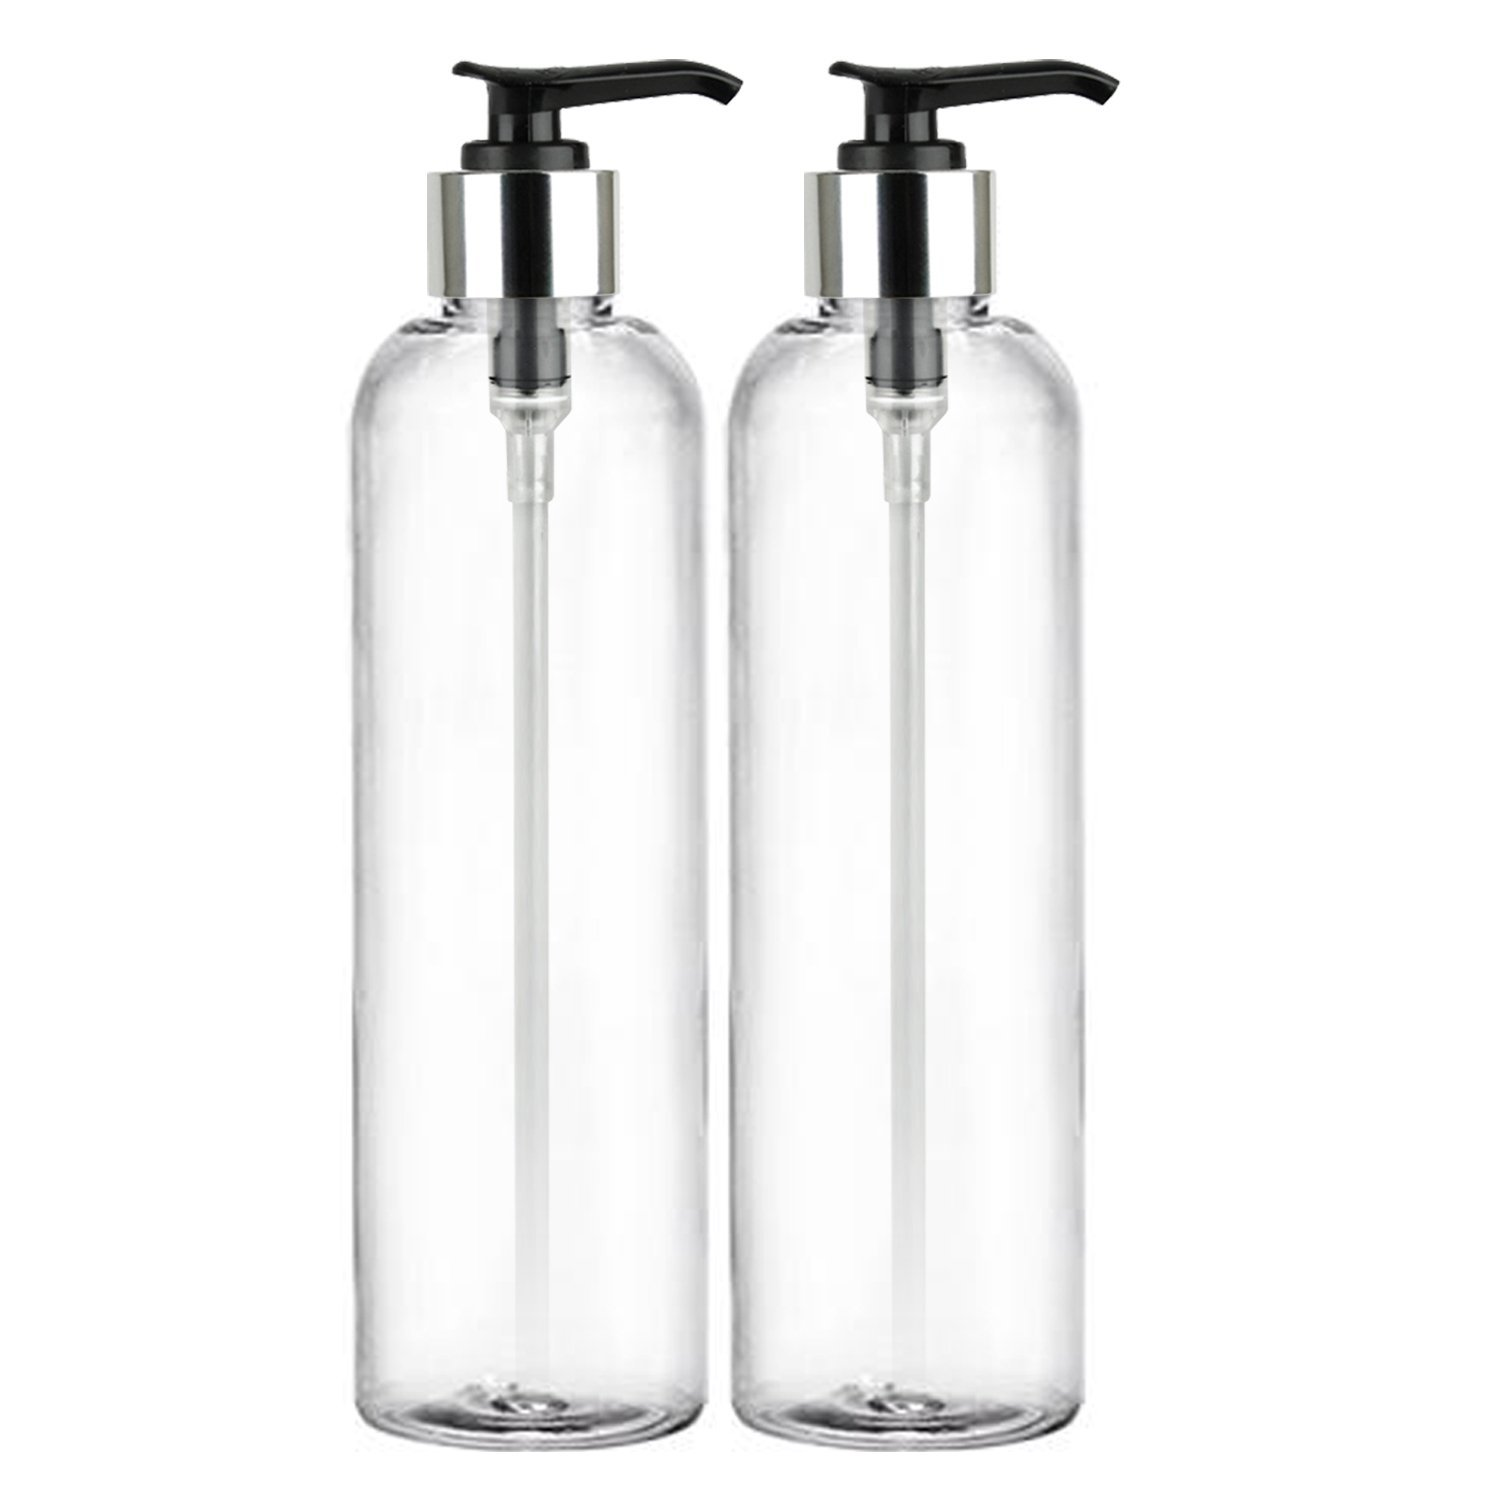 MoYo Natural Labs 8 oz Pump Dispenser, Empty Soap and Lotion Bottles with Locking Cap, BPA Free PET Plastic Containers for Essential Oils/Liquids (2 pack, Clear)